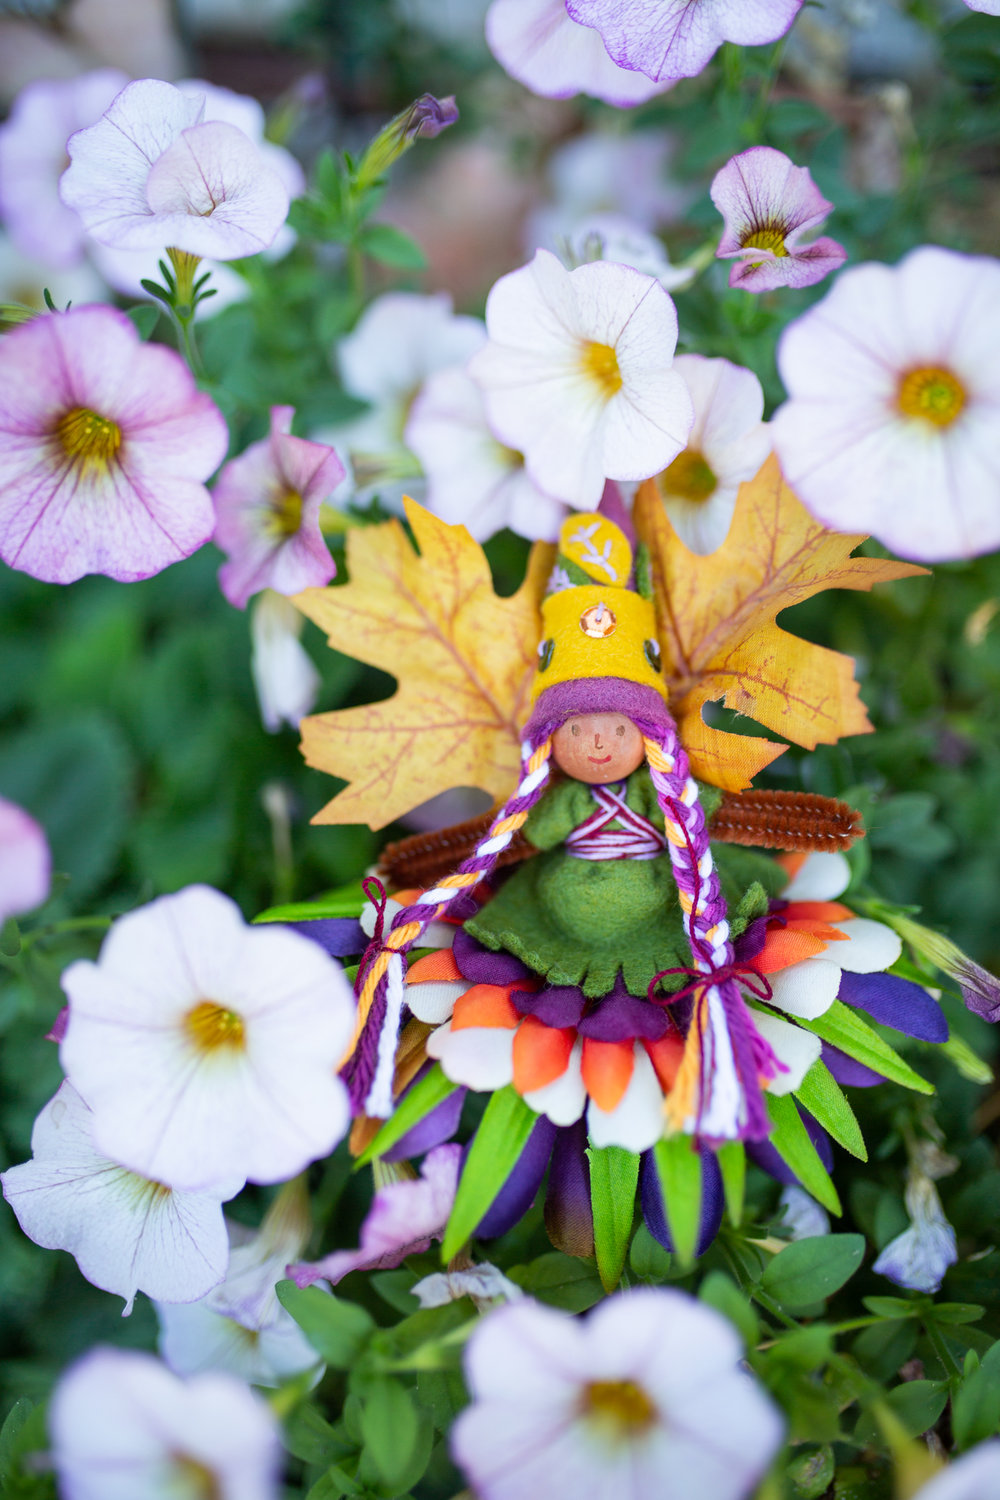 Thankful Fairy from Magical Forest Fairy Crafts Through the Seasons by Lenka Vodicka-Paredes and Asia Currie | Fairy doll for crafting with children